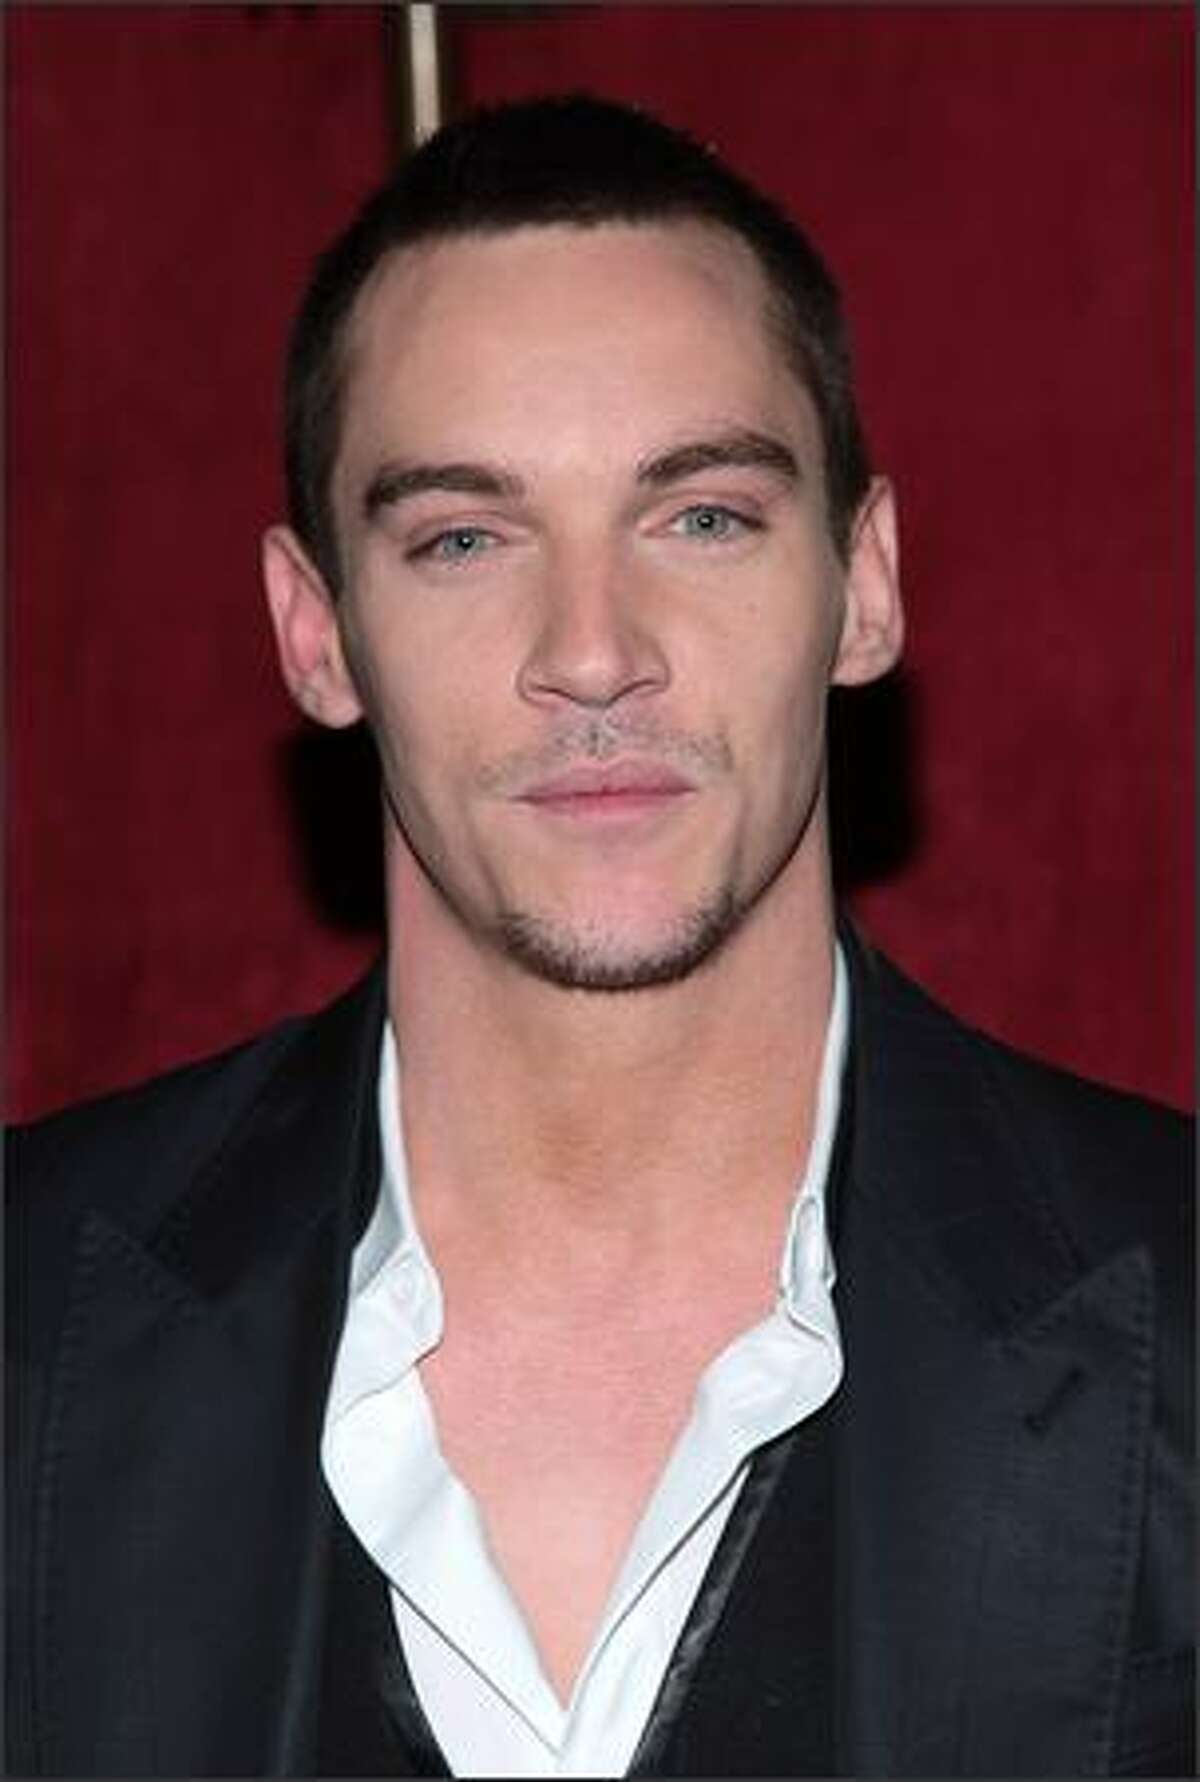 Actors Jonathan Rhys Meyers arrives at the premiere of Warner Bros. Pictures